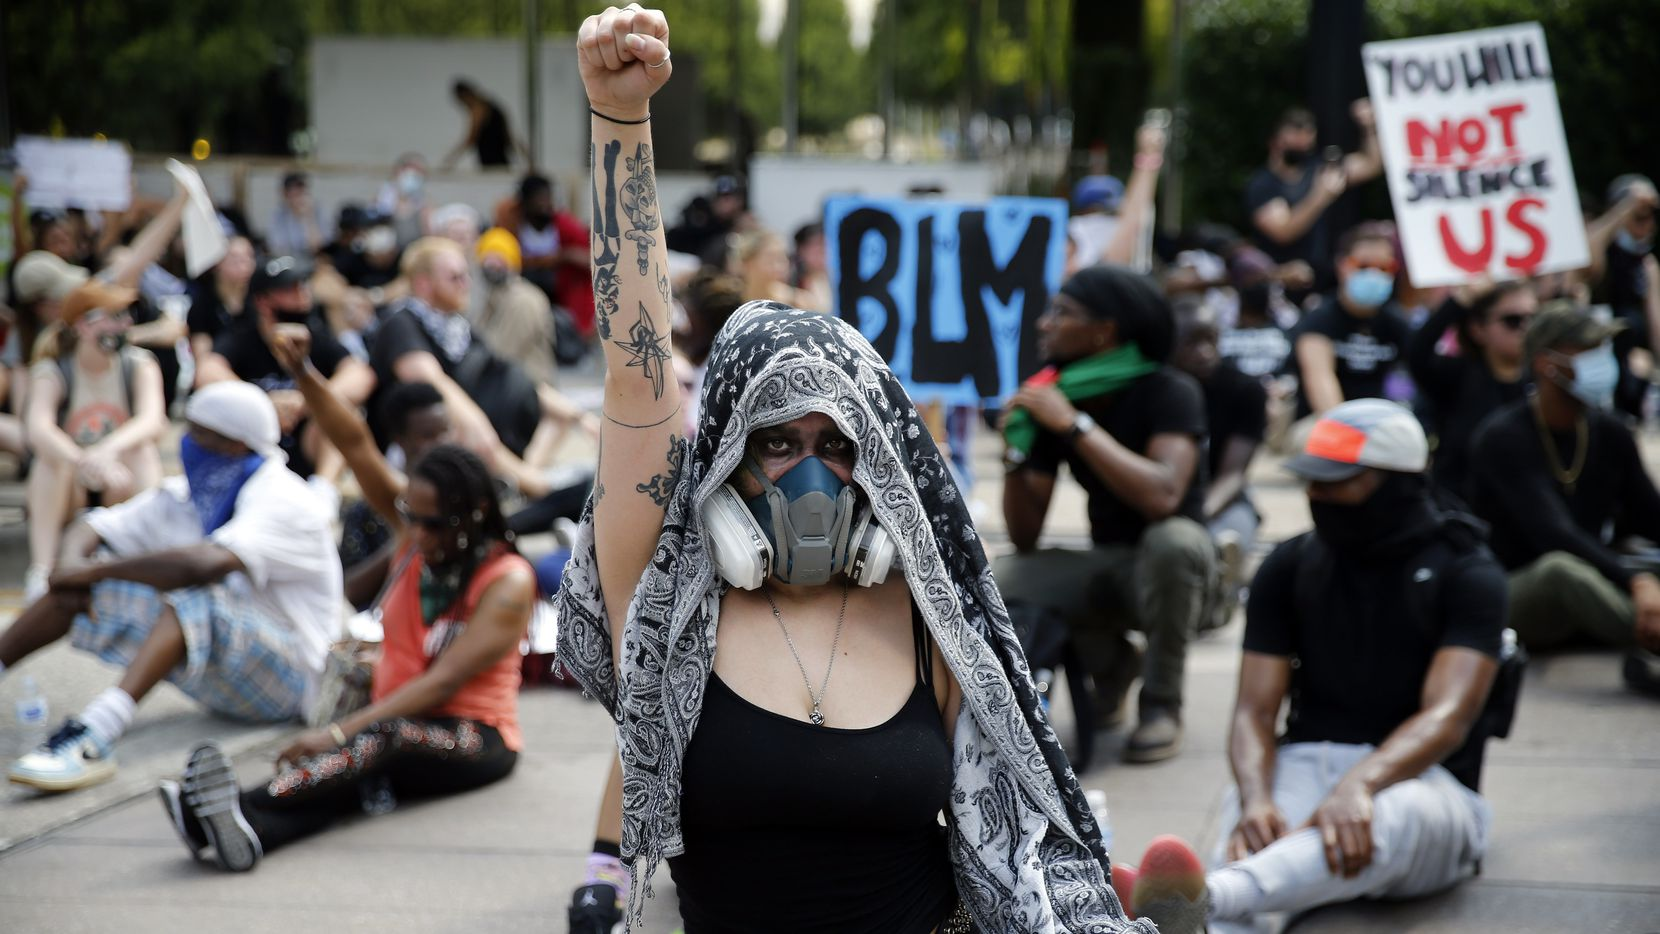 Protesters supporting Black Lives Matter blocked an intersection at Klyde Warren Park last week. Companies around the country voiced their support of peaceful protests, and some — including AT&T, American Airlines and the Business Roundtable — pledged to work for policies and laws to address injustice.